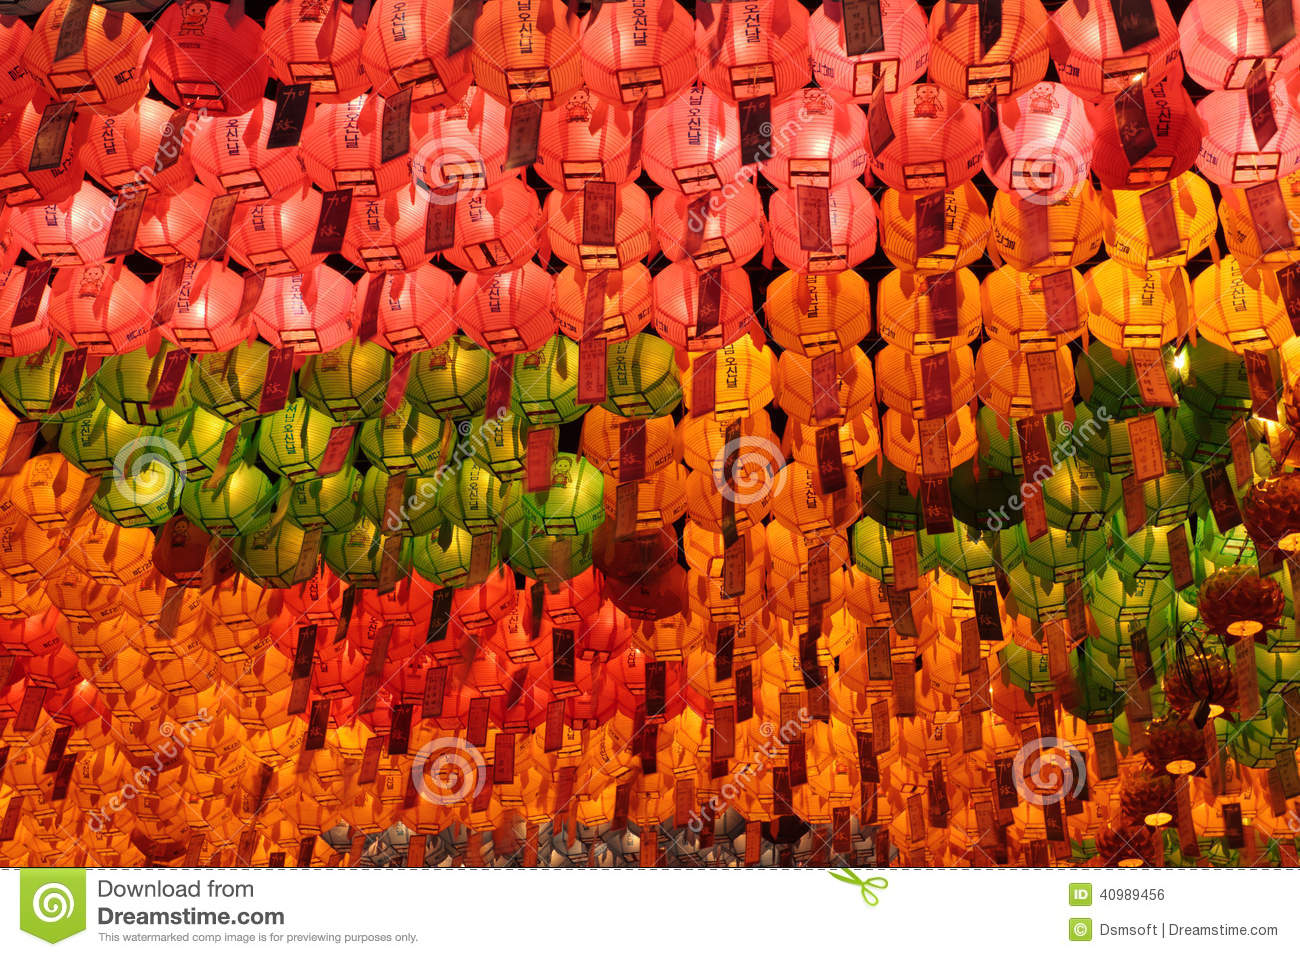 Red, yellow and green glowing lanterns